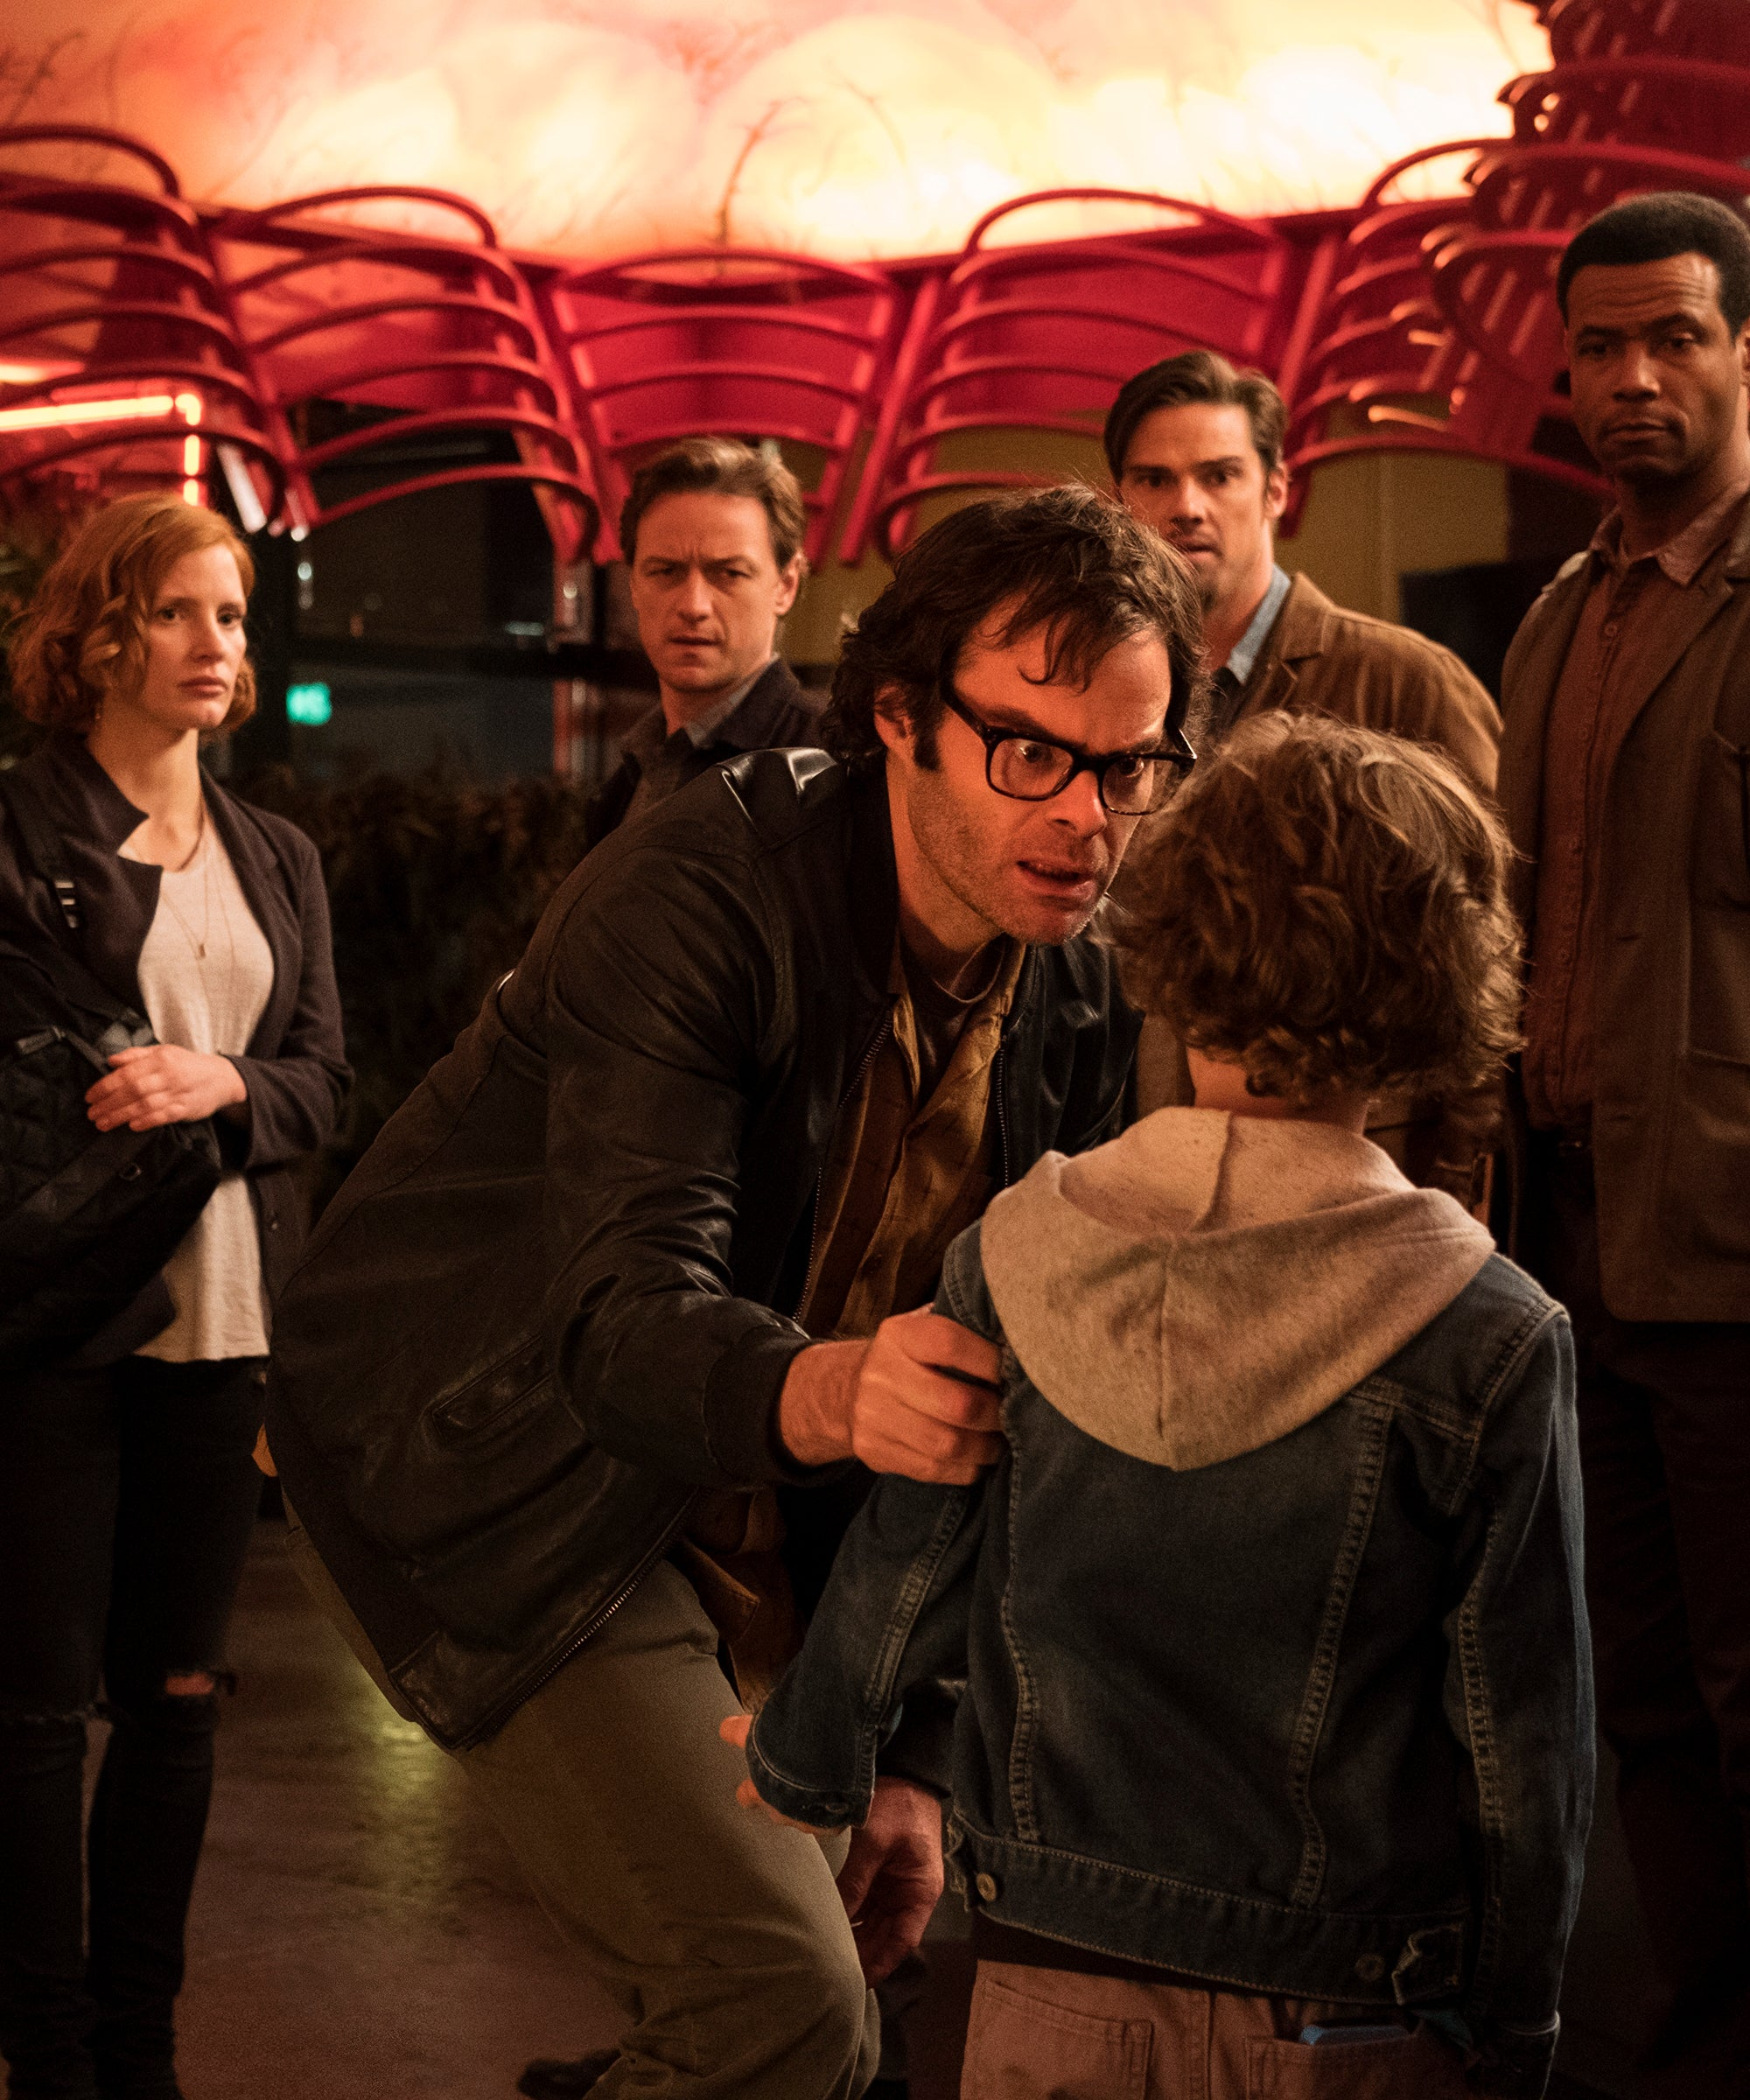 The Losers, as they stand in a restaurant, after they see each other for the first time in 27 years. Richie berates a child in IT: Chapter 2.